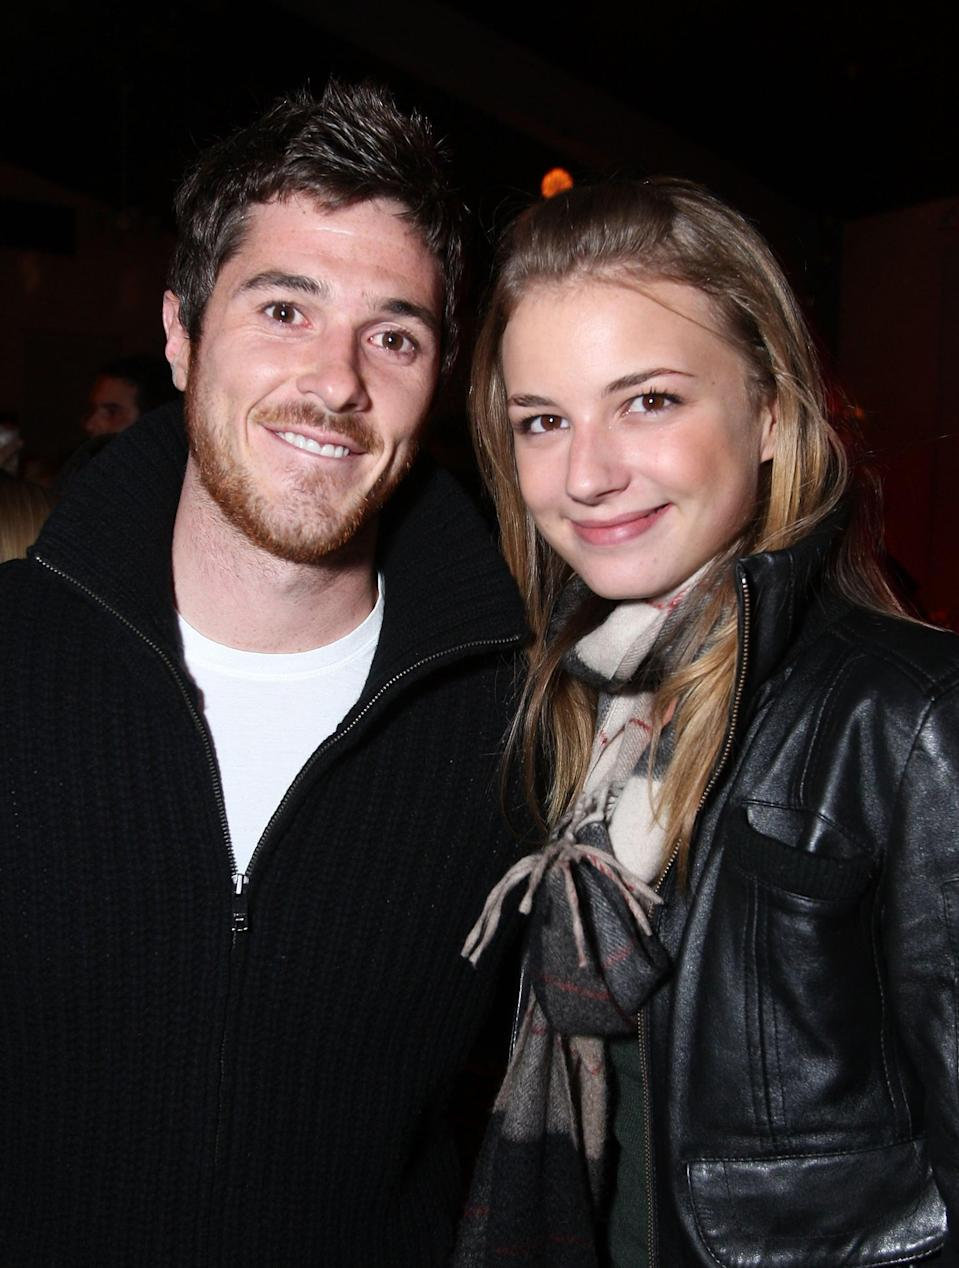 "<p>Jennifer and Michael aren't the only onscreen siblings who fell in love in real life. Dave and Emily started dating after meeting on the set of <strong>Brothers & Sisters</strong> in 2006, where they played half-siblings Justin and Rebecca. Their chemistry was so palpable that a plot twist was added into the storyline, in which the two found out they weren't actually related and could date. Though the actors remained on the series until 2011, their real-life romance only lasted until 2008. </p> <p>Neither actor has publicly spoken about their experience working together post-split, though in May 2012, <a href=""http://www.usmagazine.com/celebrity-news/news/emily-vancamp-i-dont-want-a-boyfriend-who-smokes-pot-plays-video-games-201235/"" class=""link rapid-noclick-resp"" rel=""nofollow noopener"" target=""_blank"" data-ylk=""slk:Emily alluded to a past relationship that didn't end well"">Emily alluded to a past relationship that didn't end well</a> during an interview with <strong>Lucky</strong>, saying ""every young woman needs to have one boyfriend who disappoints her, who really breaks her heart"" in order to know what true love is.</p>"